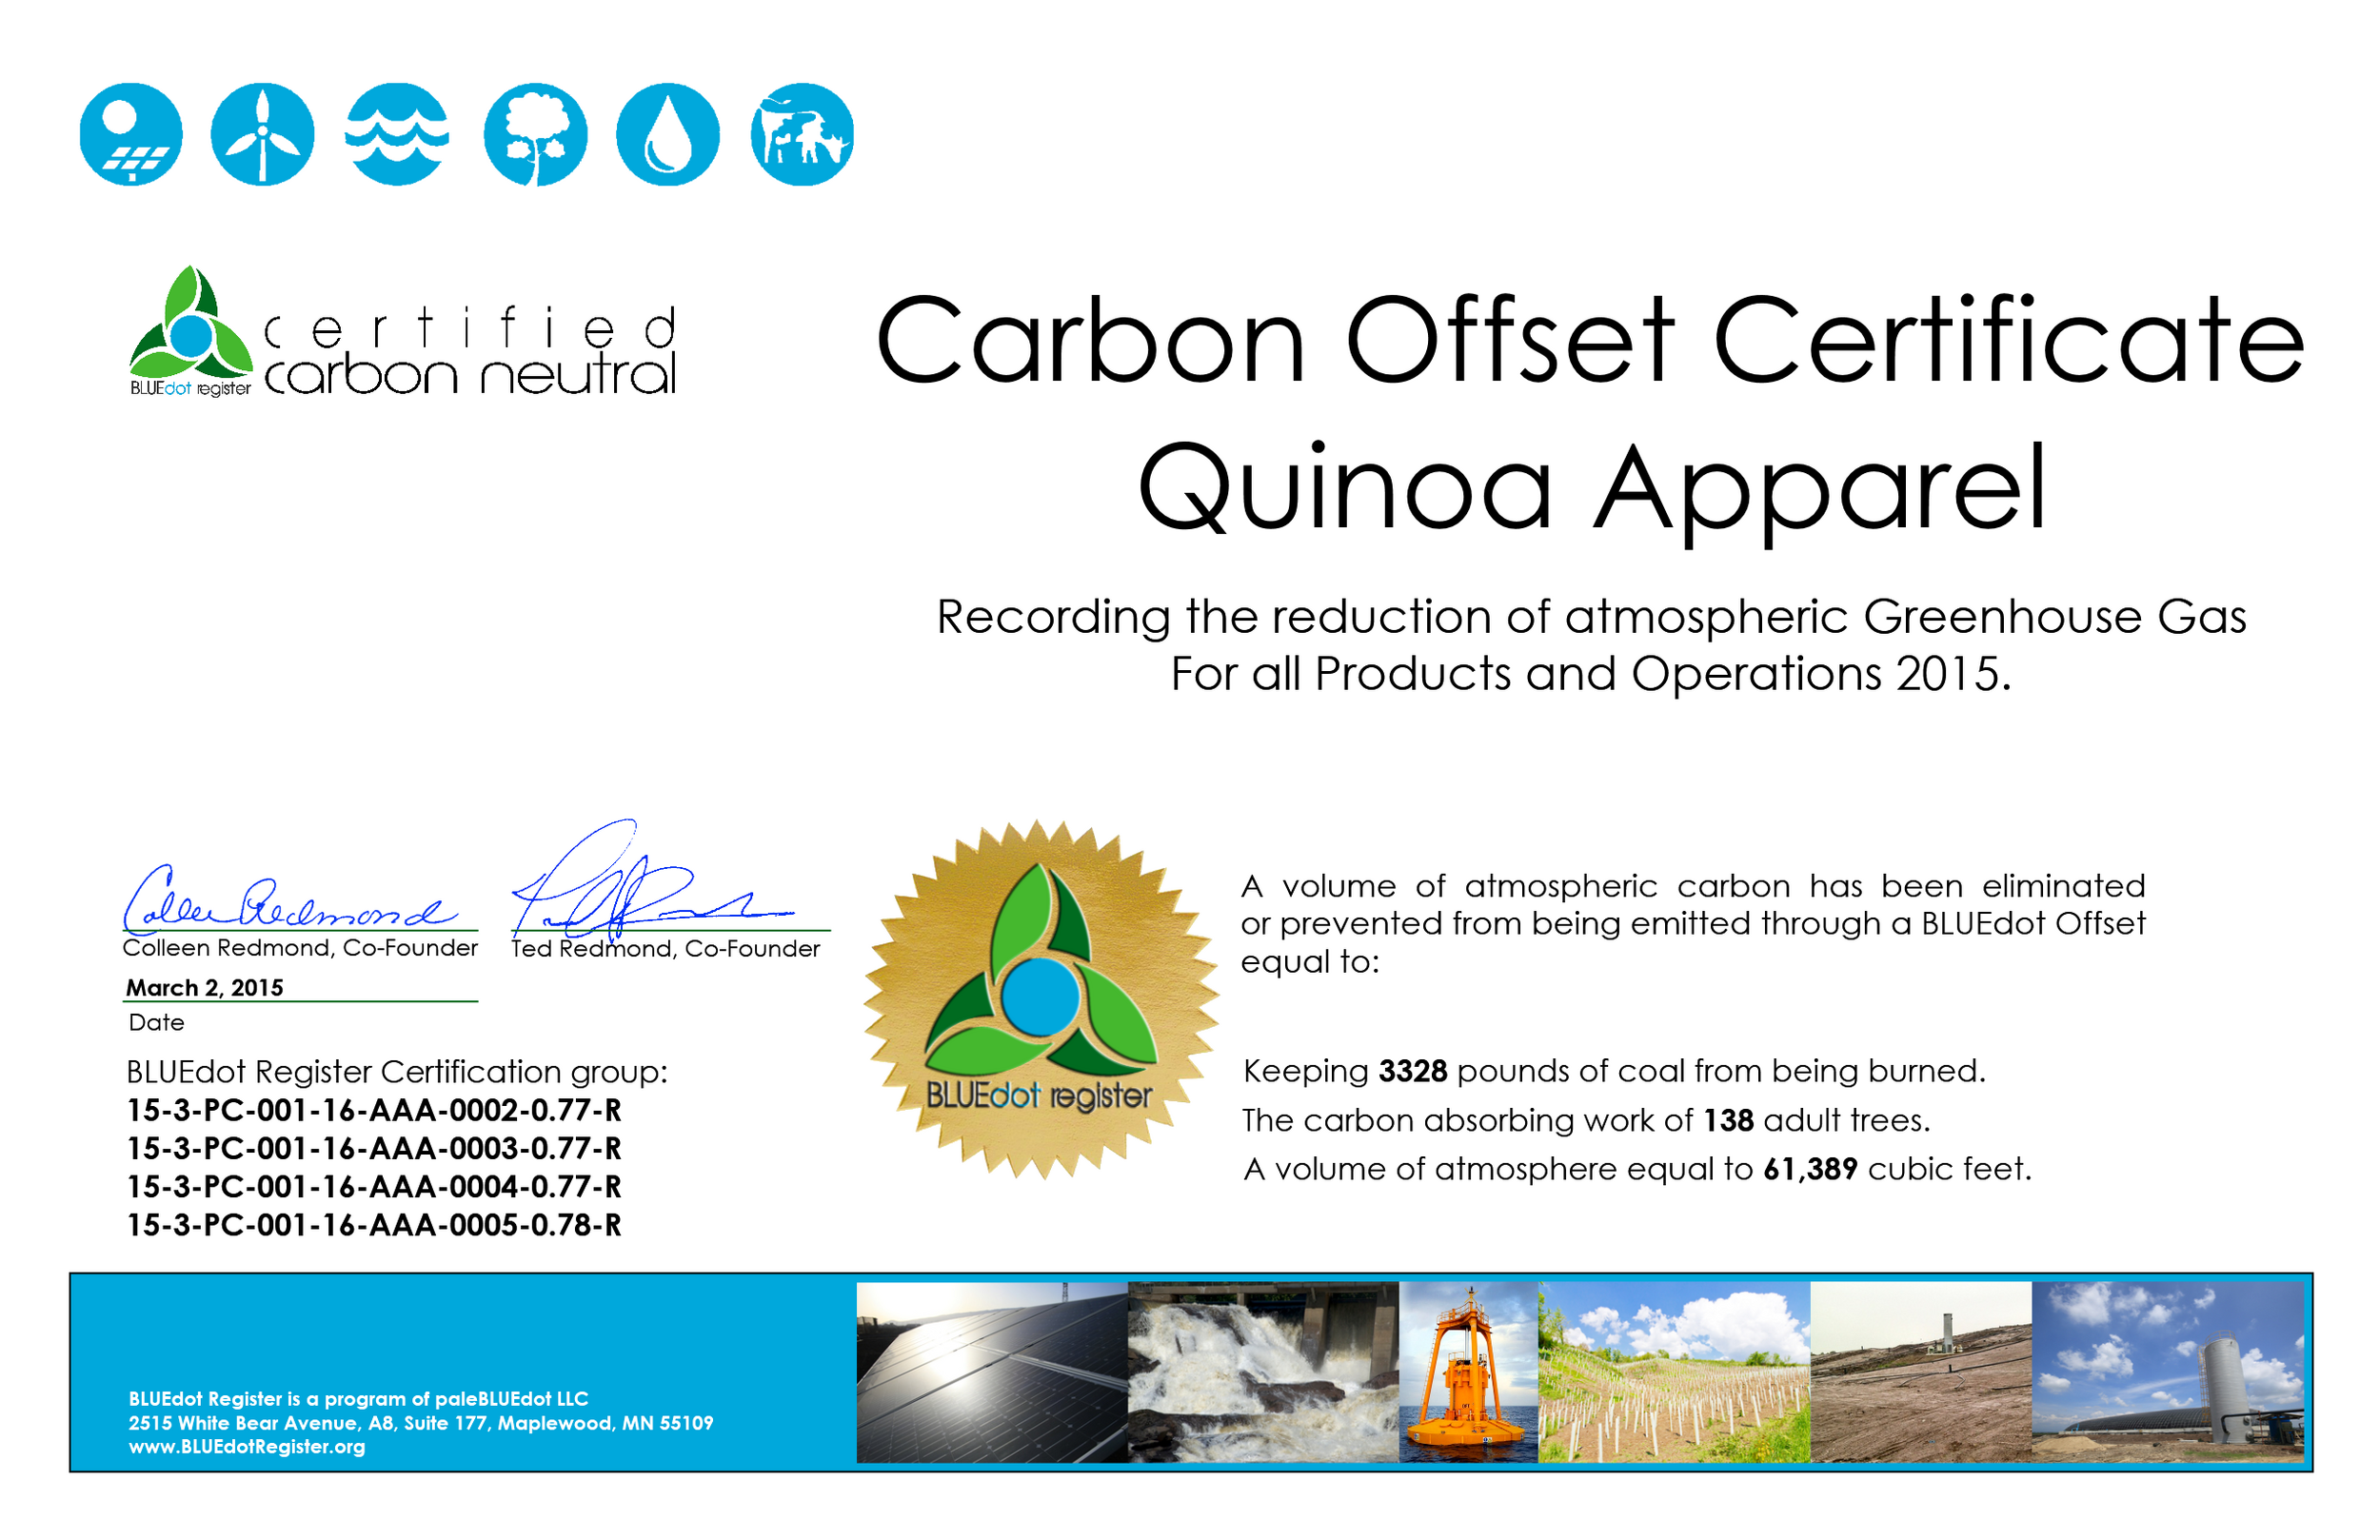 Click image to view Quinoa Apparel Certification